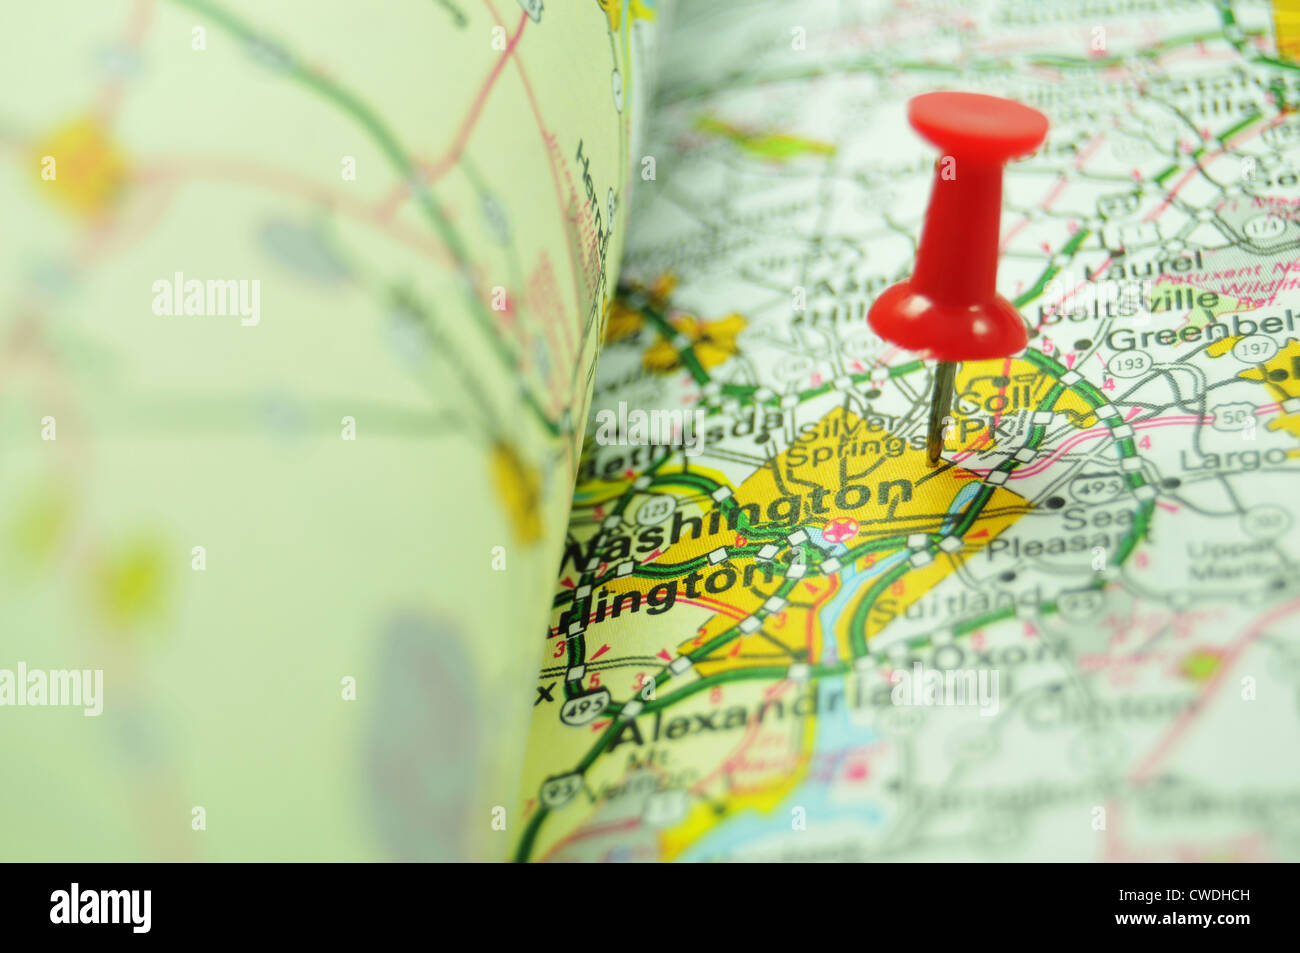 Washington Us Capital City Marked With Red Pin On Map Stock Photo - Us-pin-map